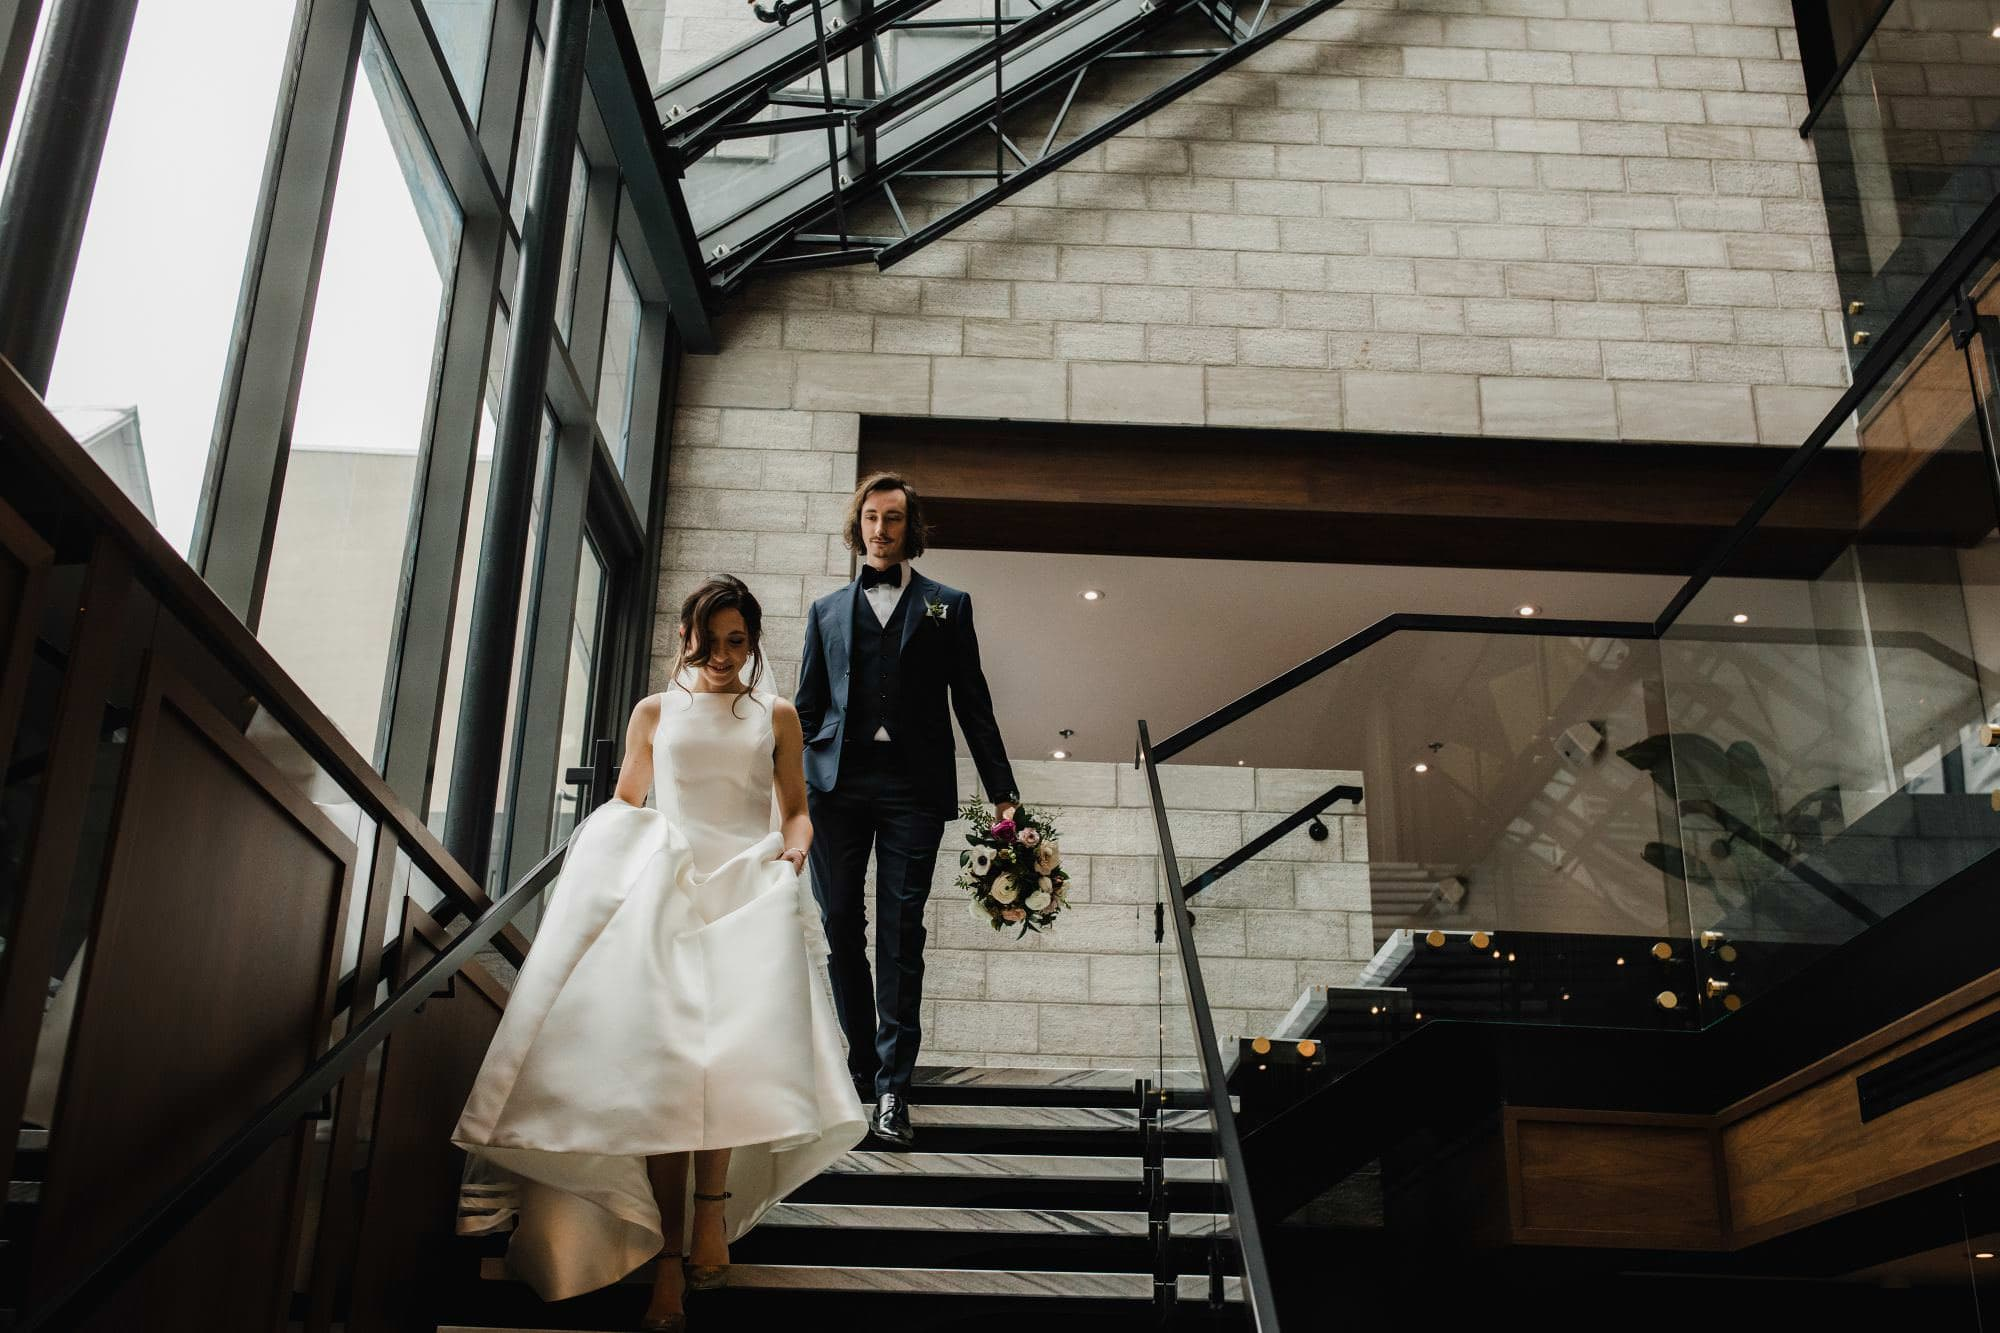 Bride and Groom walk down stairs in the lobby of the william grey hotel with beautiful architecture